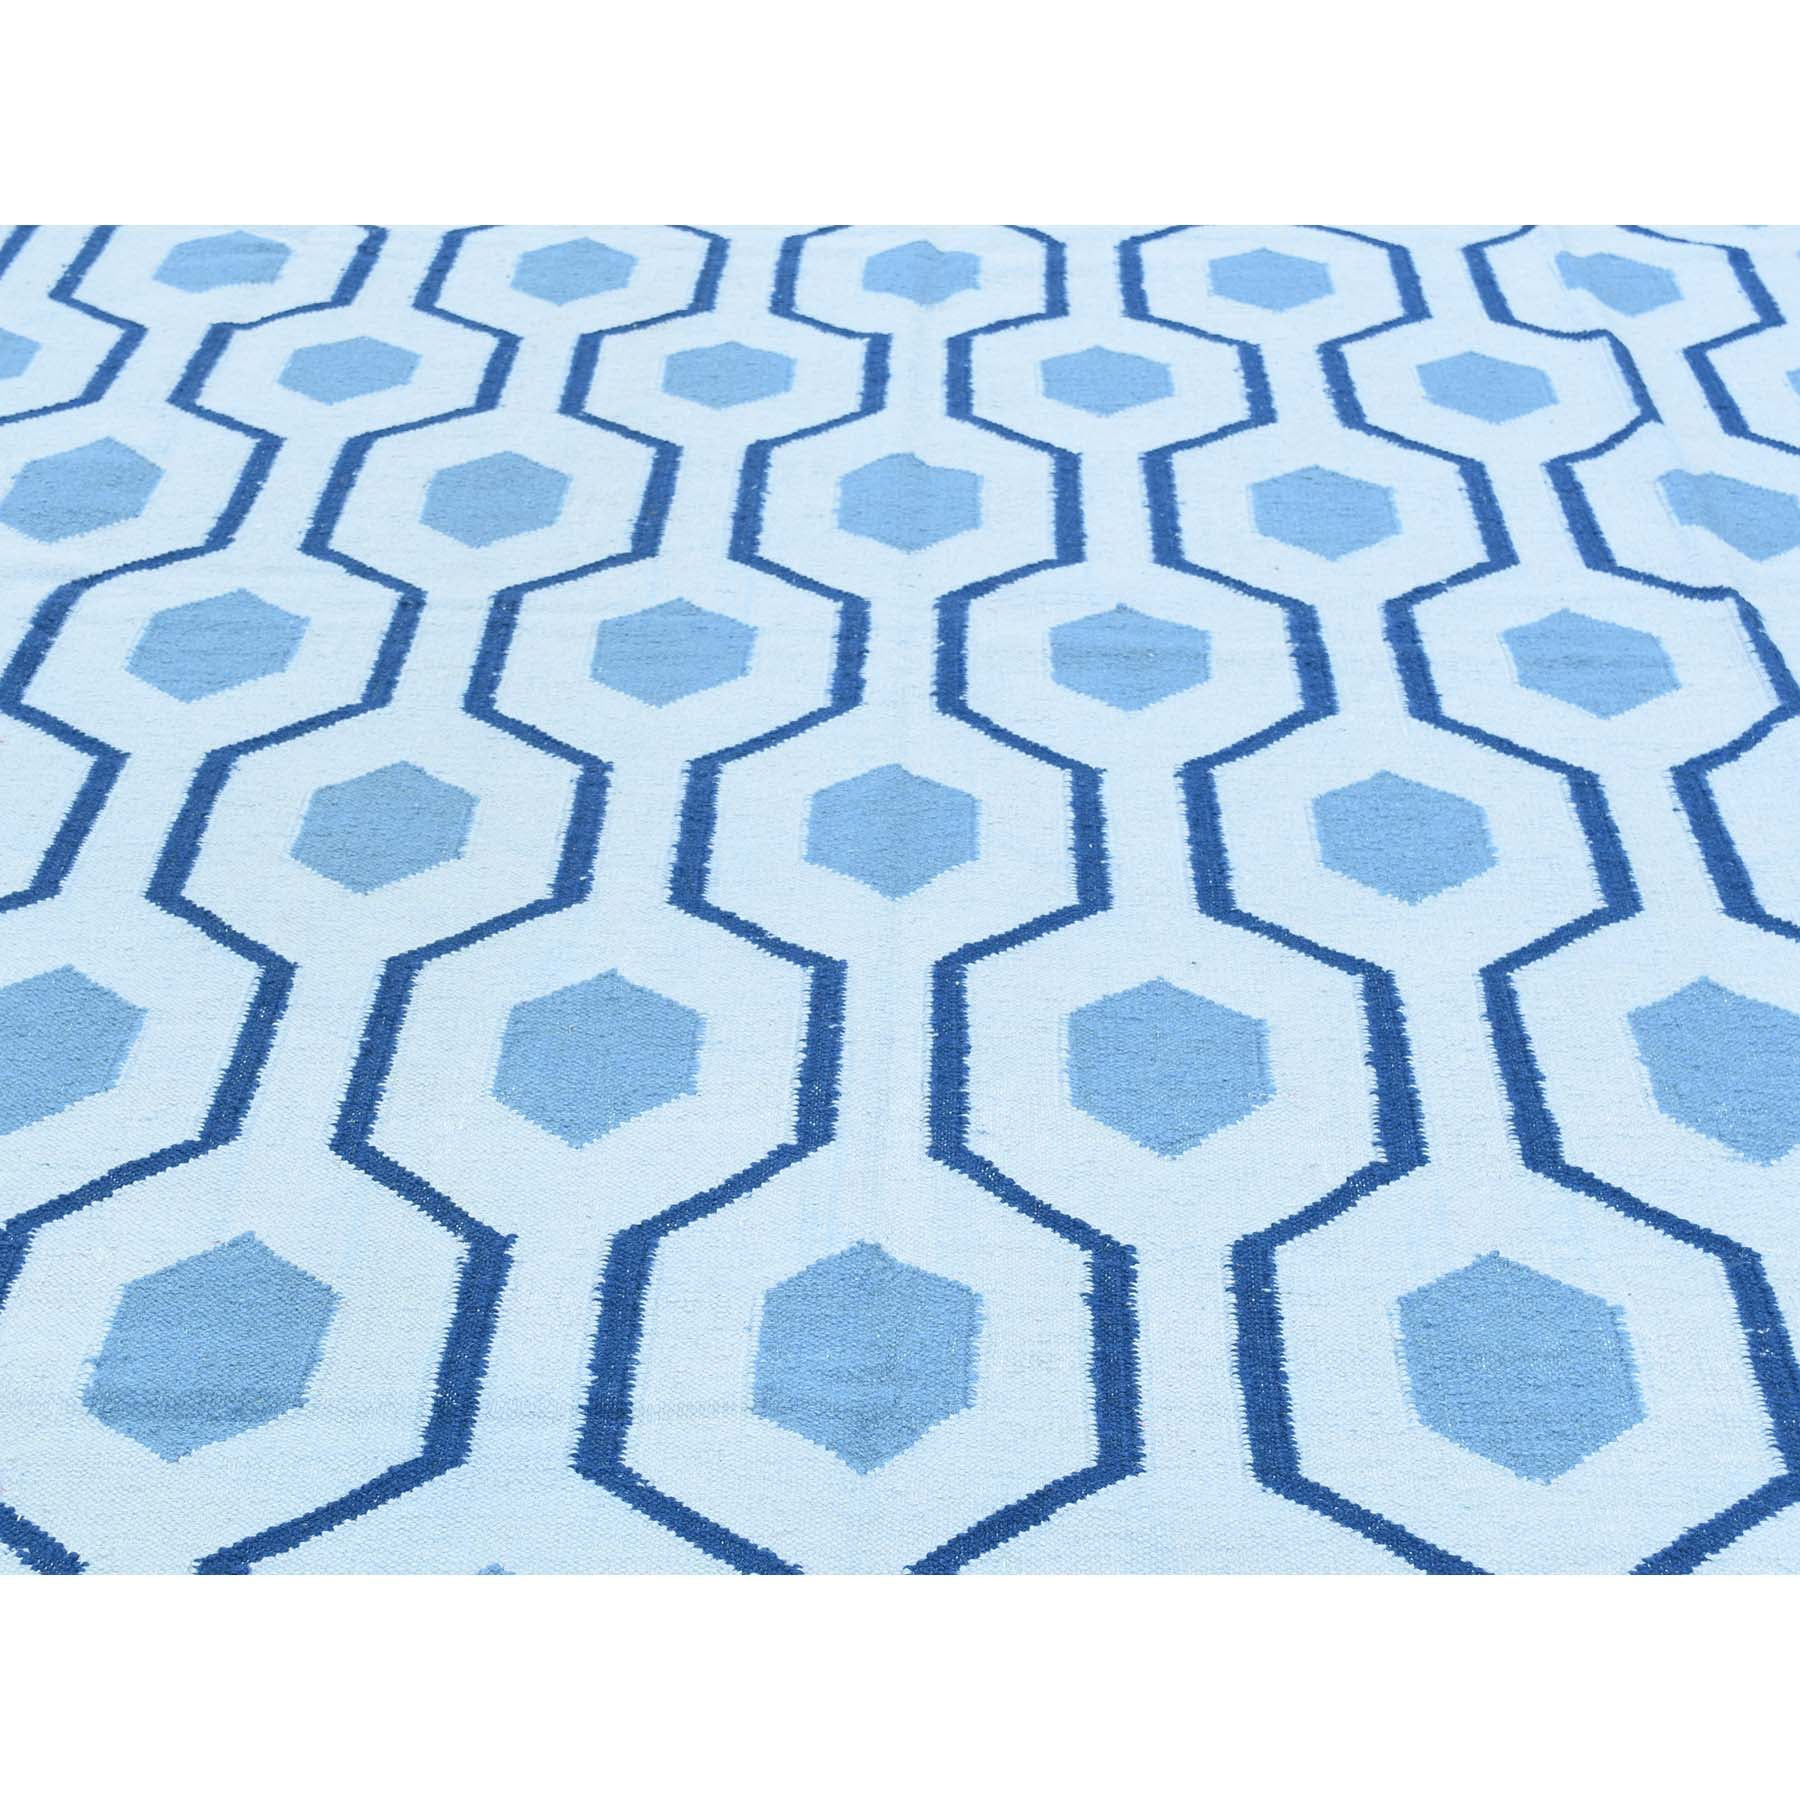 "Handmade Flat Weave Rectangle Rug > Design# SH32034 > Size: 9'-1"" x 12'-0"" [ONLINE ONLY]"